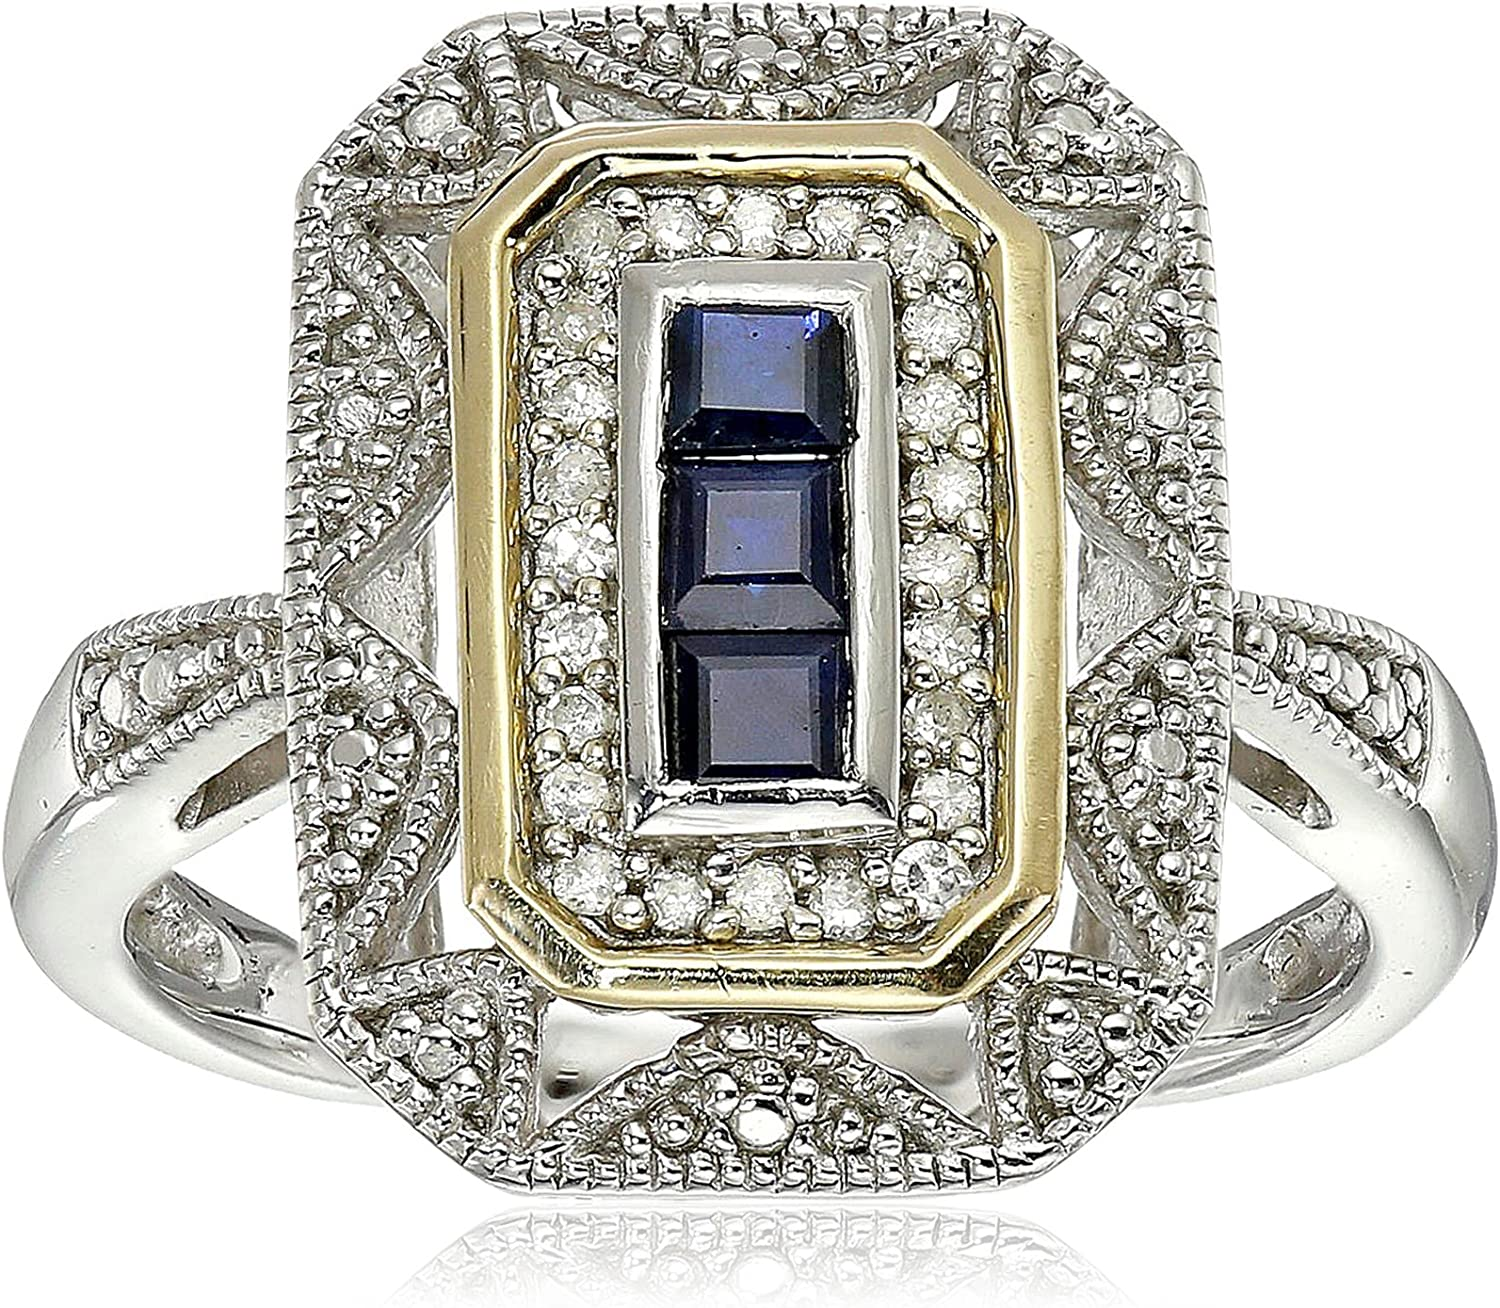 Belle 5 x 7 mm Diffusion Sapphire Sterling 925 Silver Ring Jewelry US 3-13